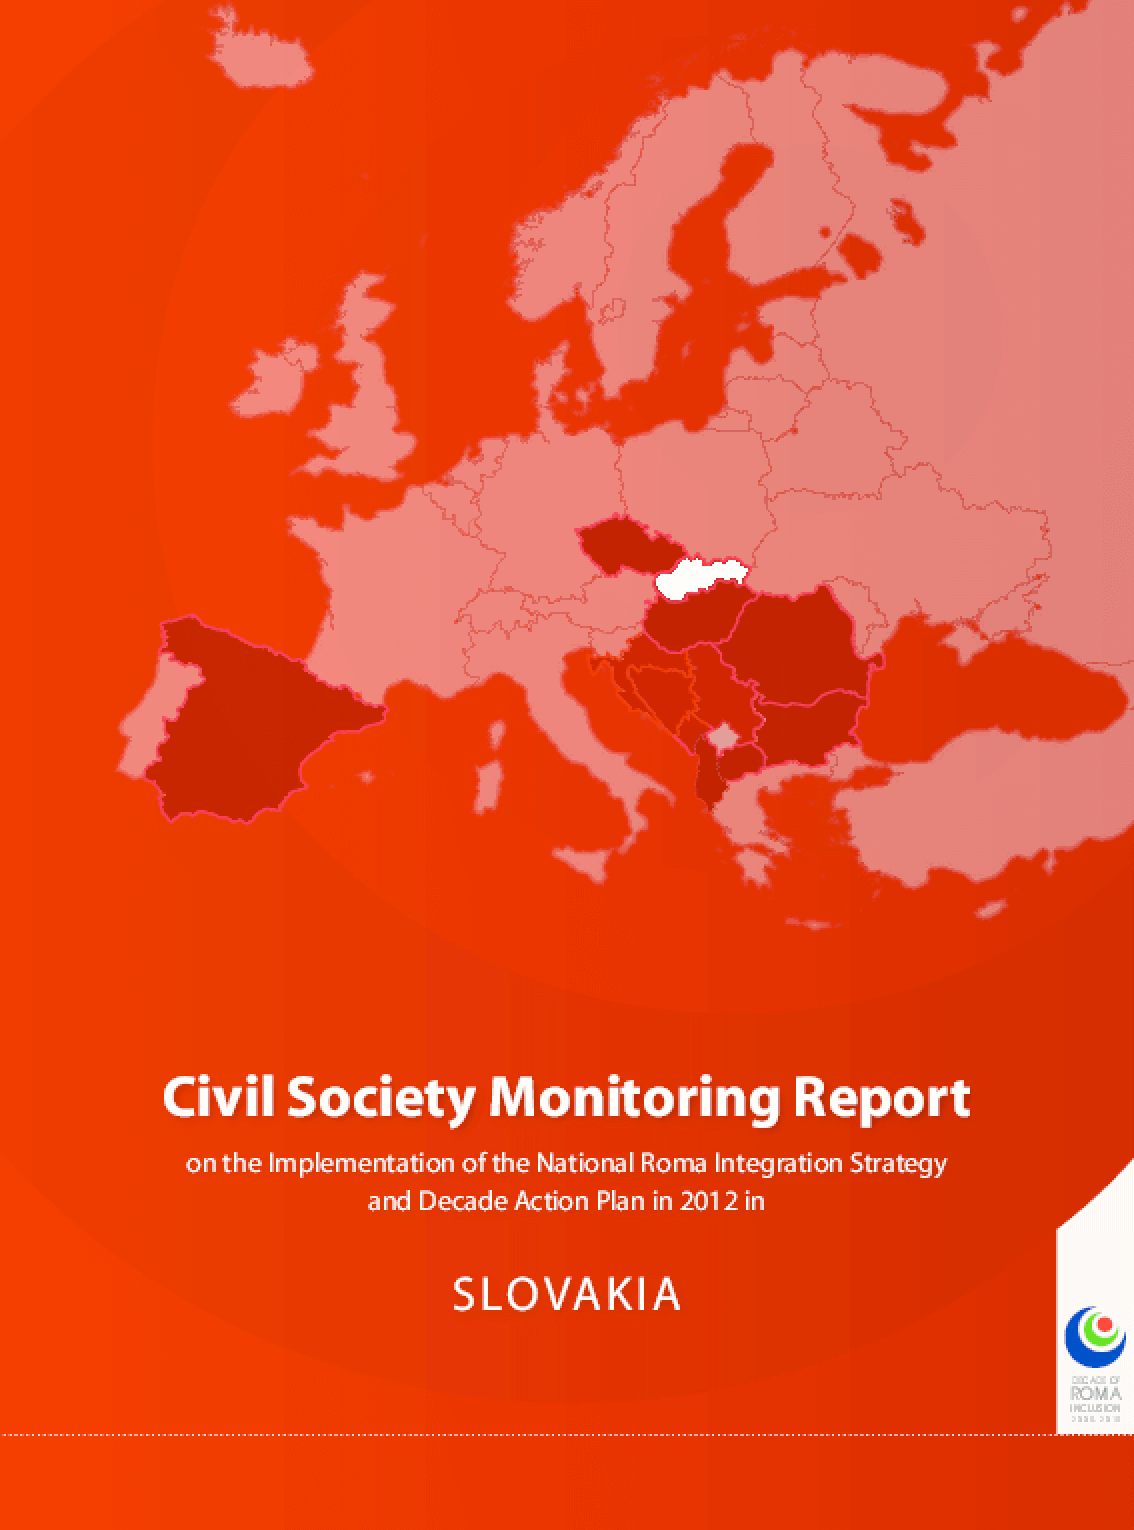 Civil Society Monitoring Report on the Implementation of the National Roma Integration Strategy and Decade Action Plan in 2012 in: Slovakia